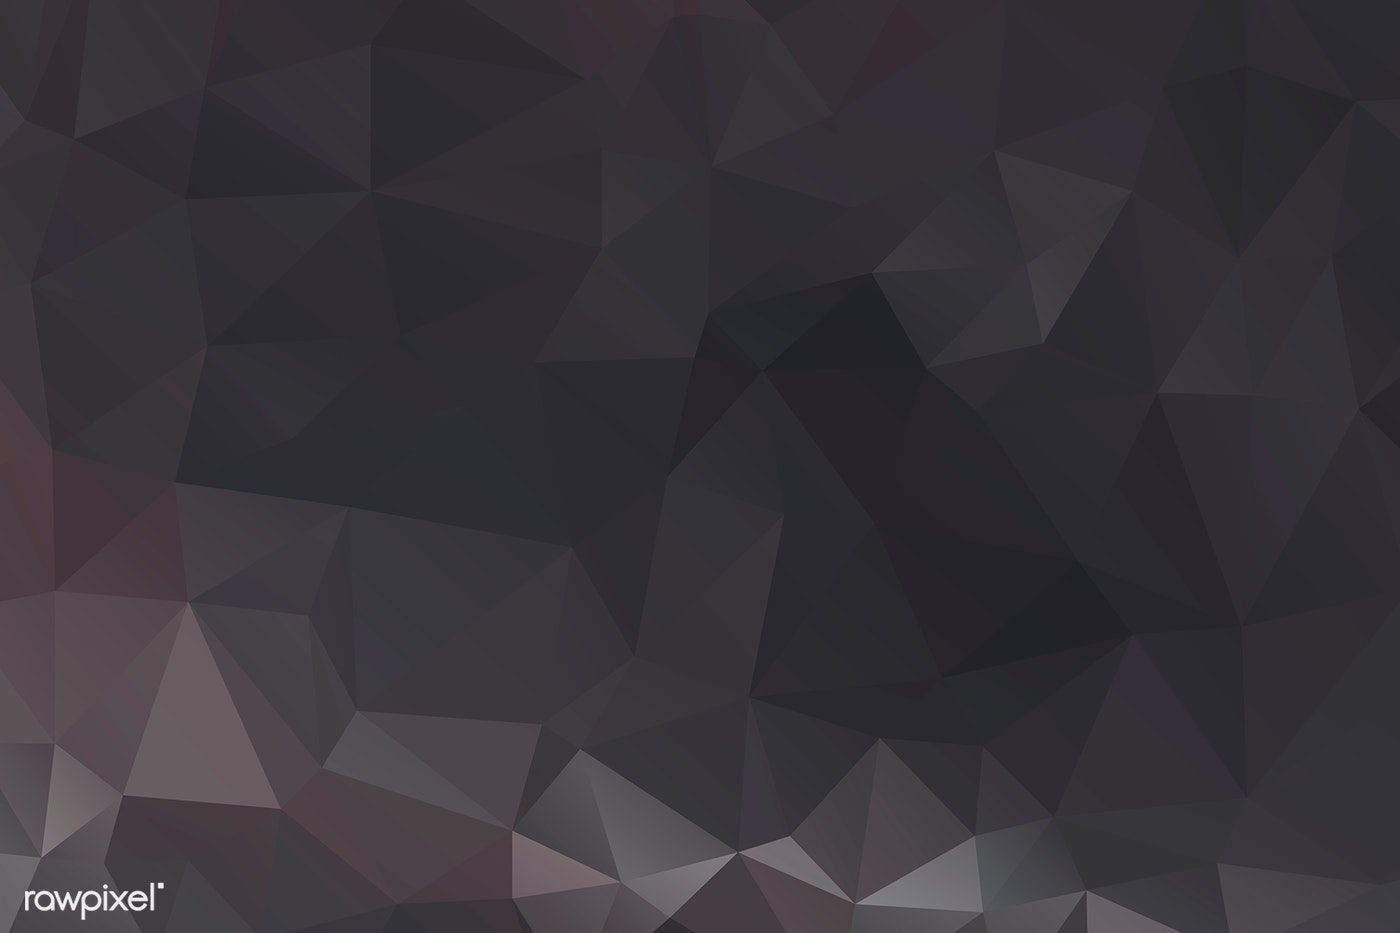 Black Polygon Abstract Background Design Free Image By Rawpixel